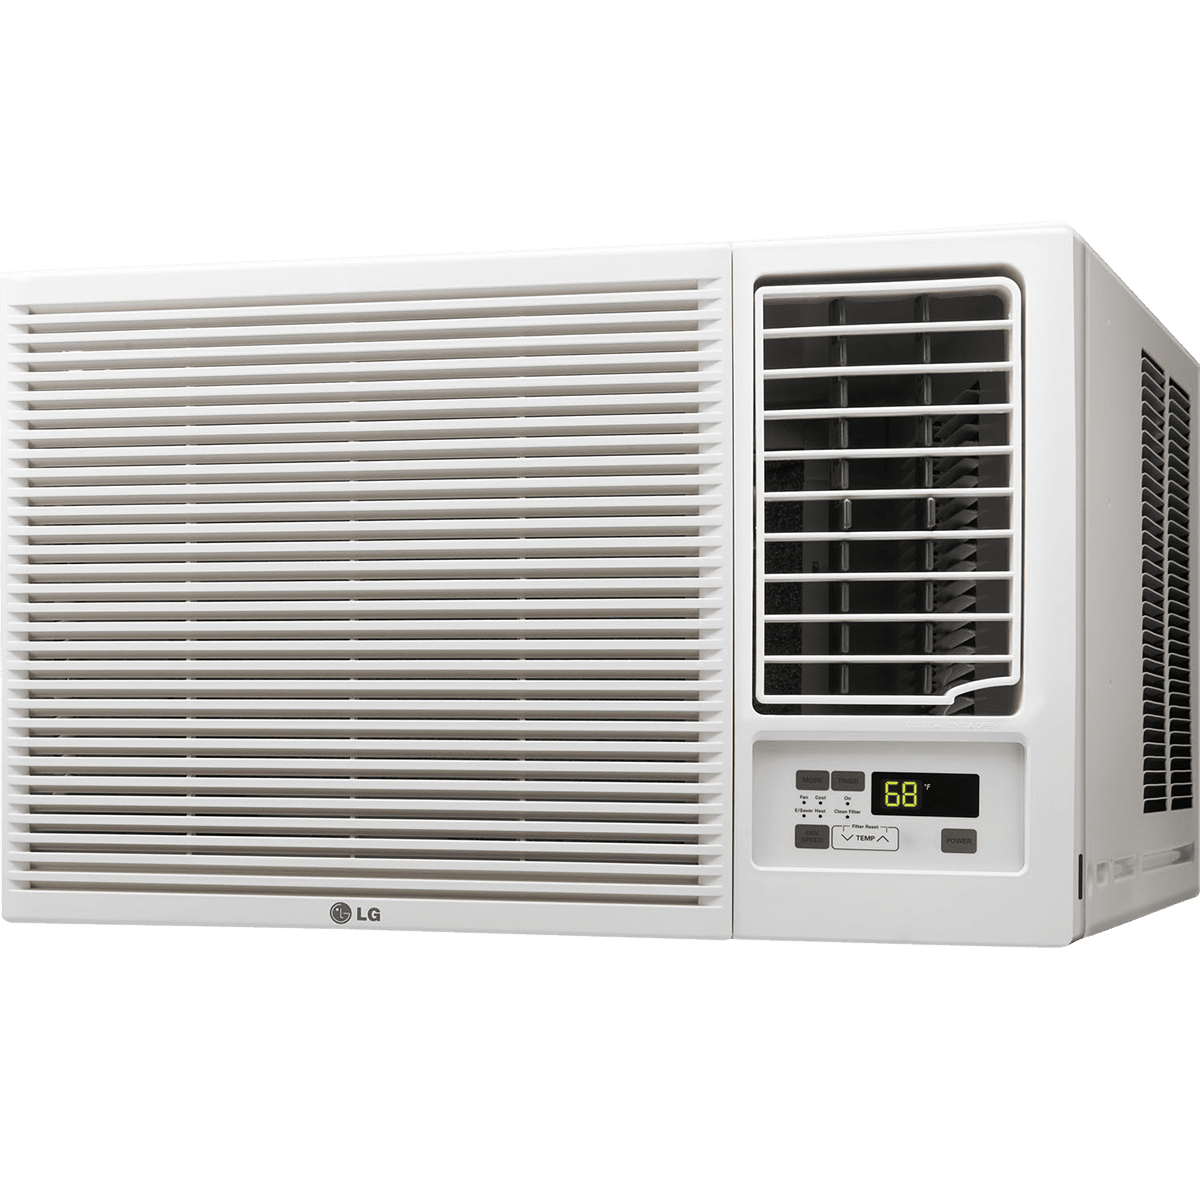 lg heating/cooling 18,000 btu window ac | sylvane